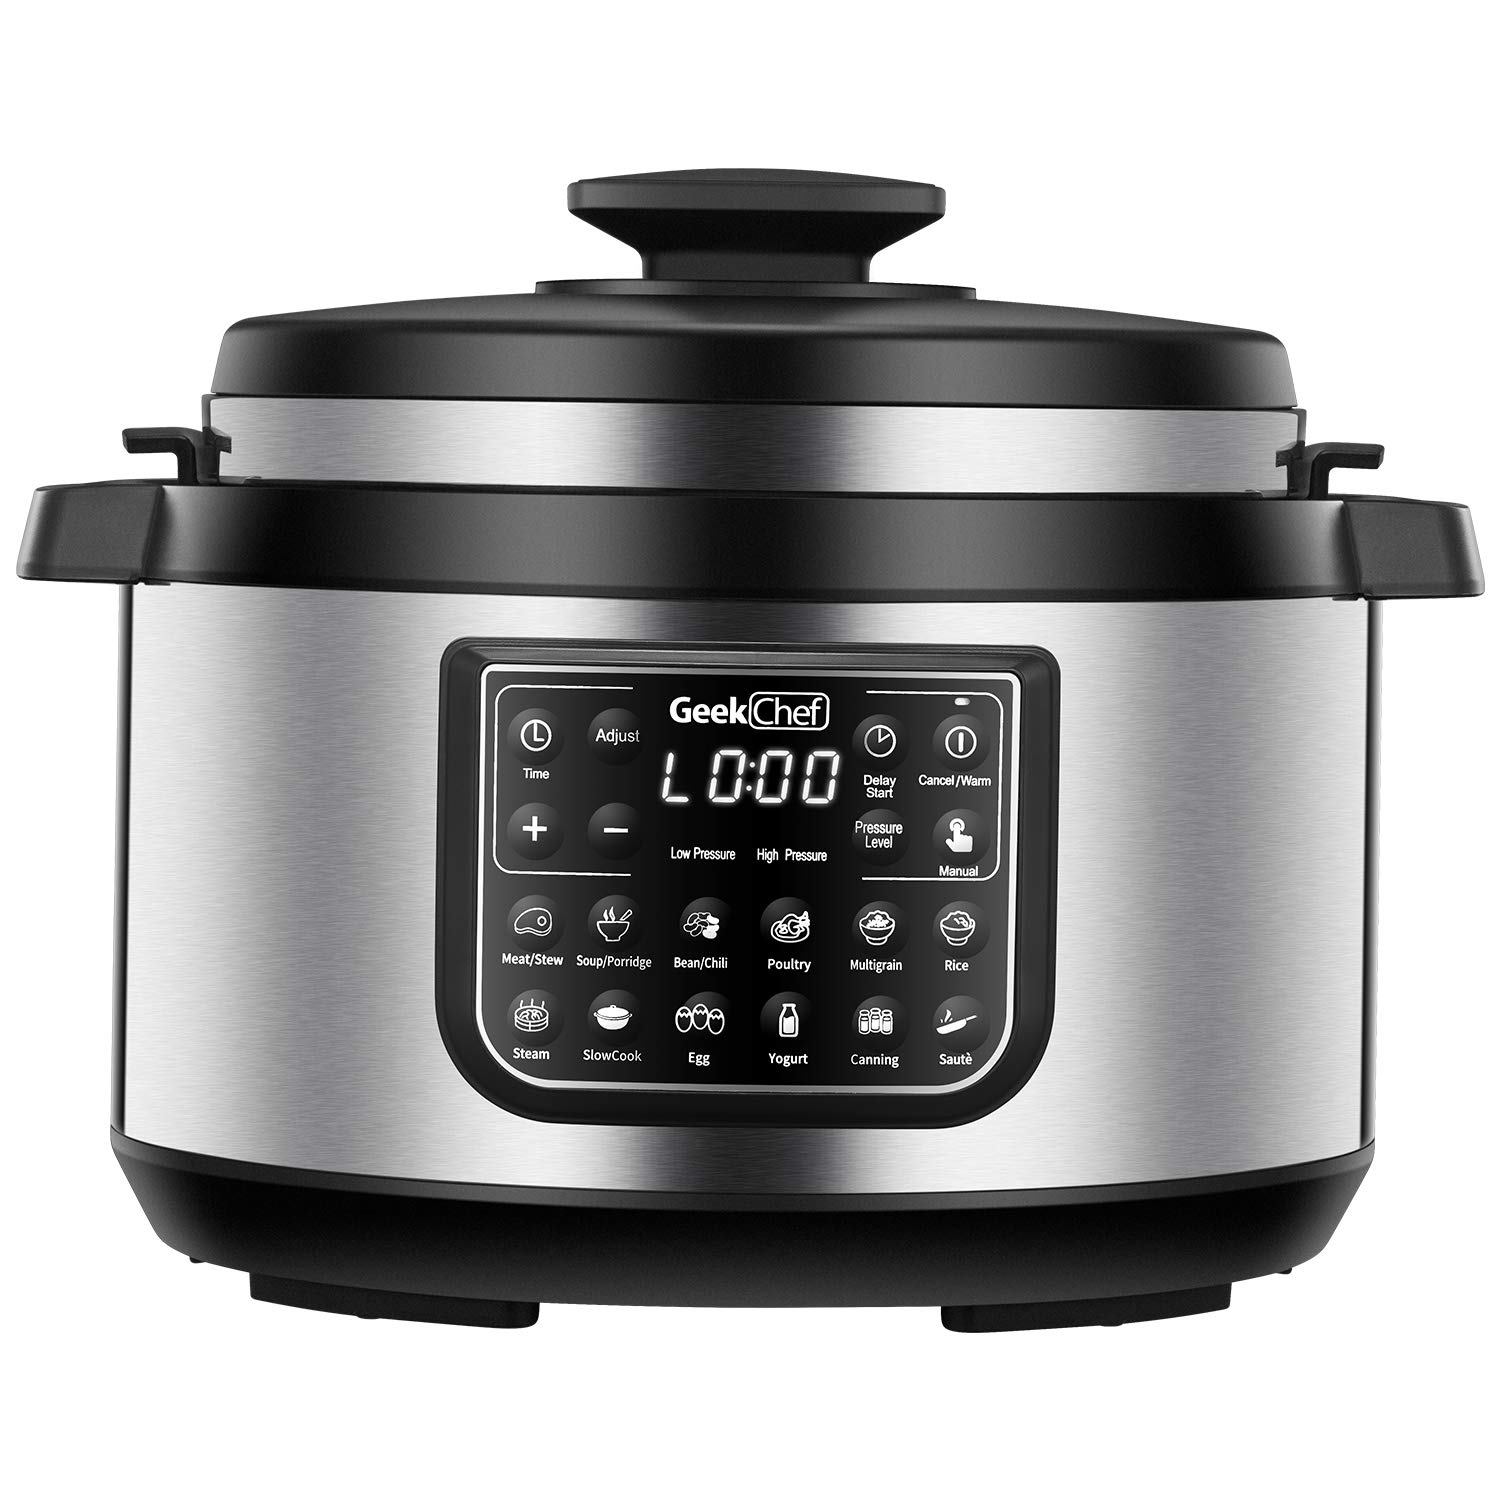 Geek Chef 8 quart OVAL shape multi-functional electric pressure cooker.New technology,designed with non stick oval inner pot, cool-touch handles, EZ-Lock,slower cooker,rice cooker combination by  (Image #1)